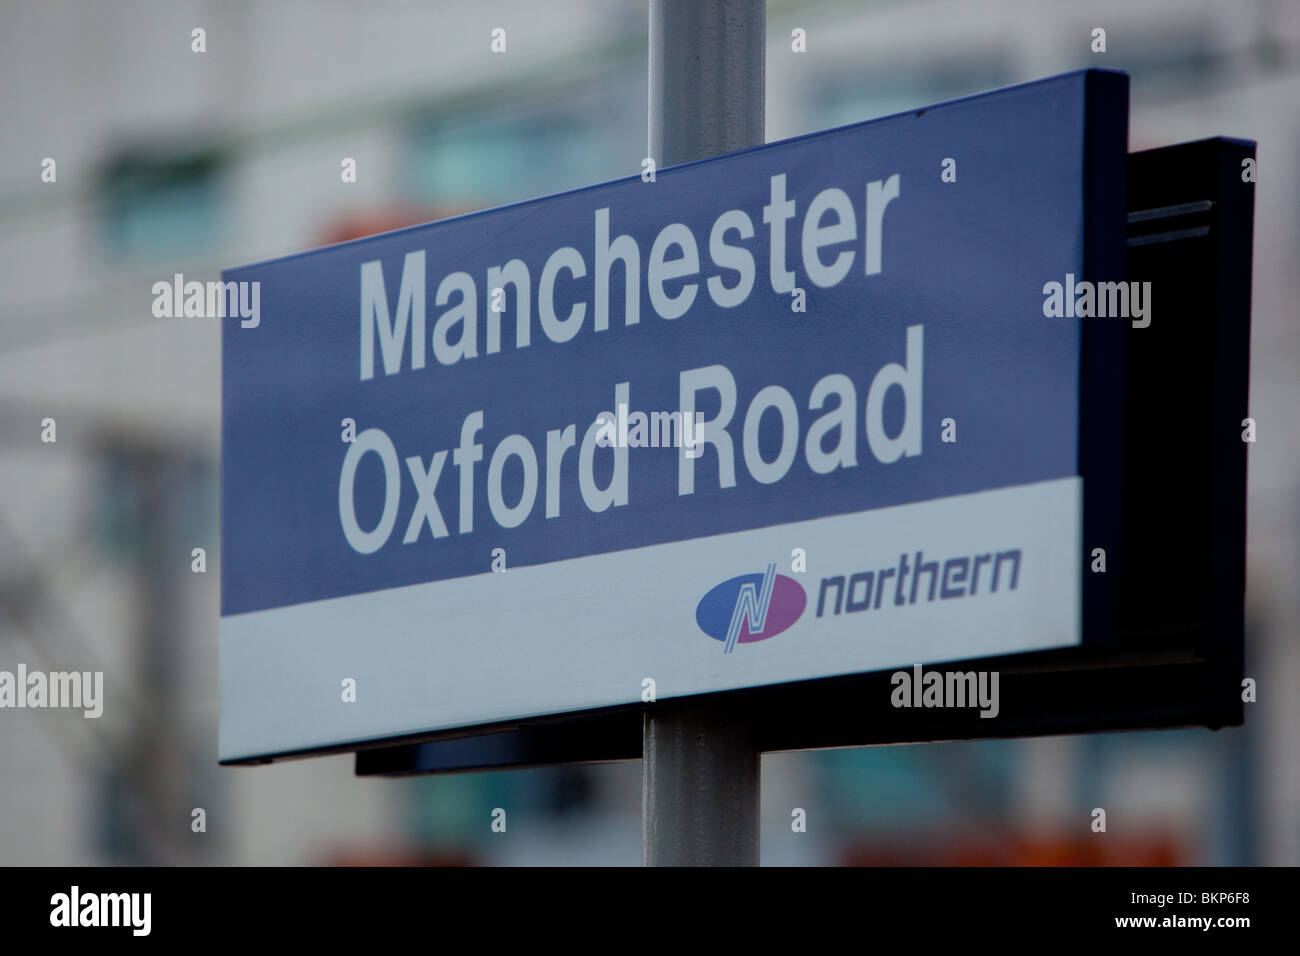 Station Identification sign at Manchester Oxford Road Station - Stock Image